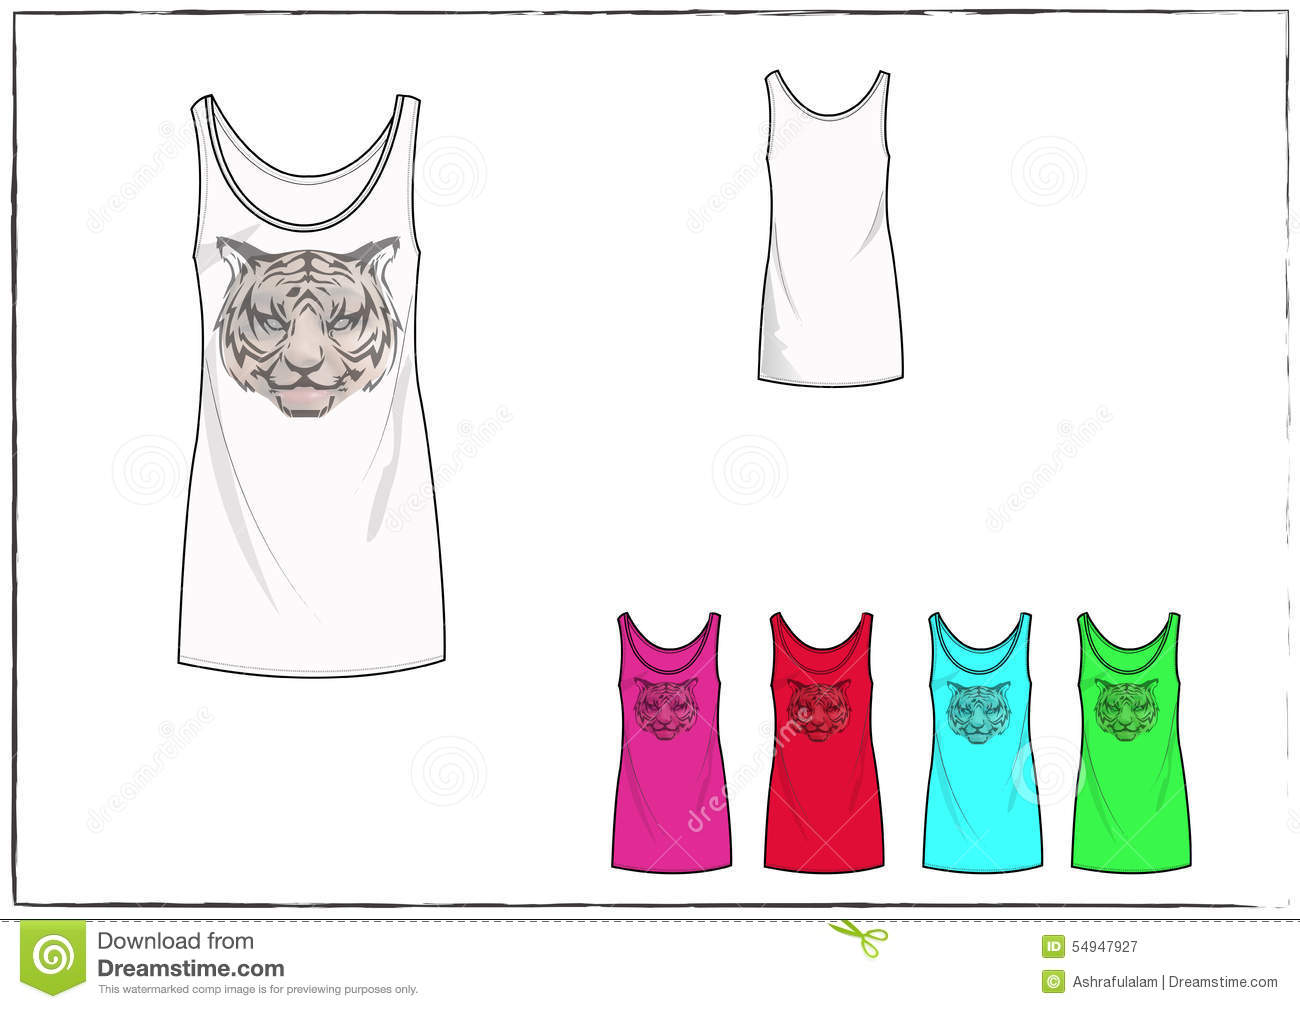 Illustration Of Tank Top With Cat Face Clothing Design Template